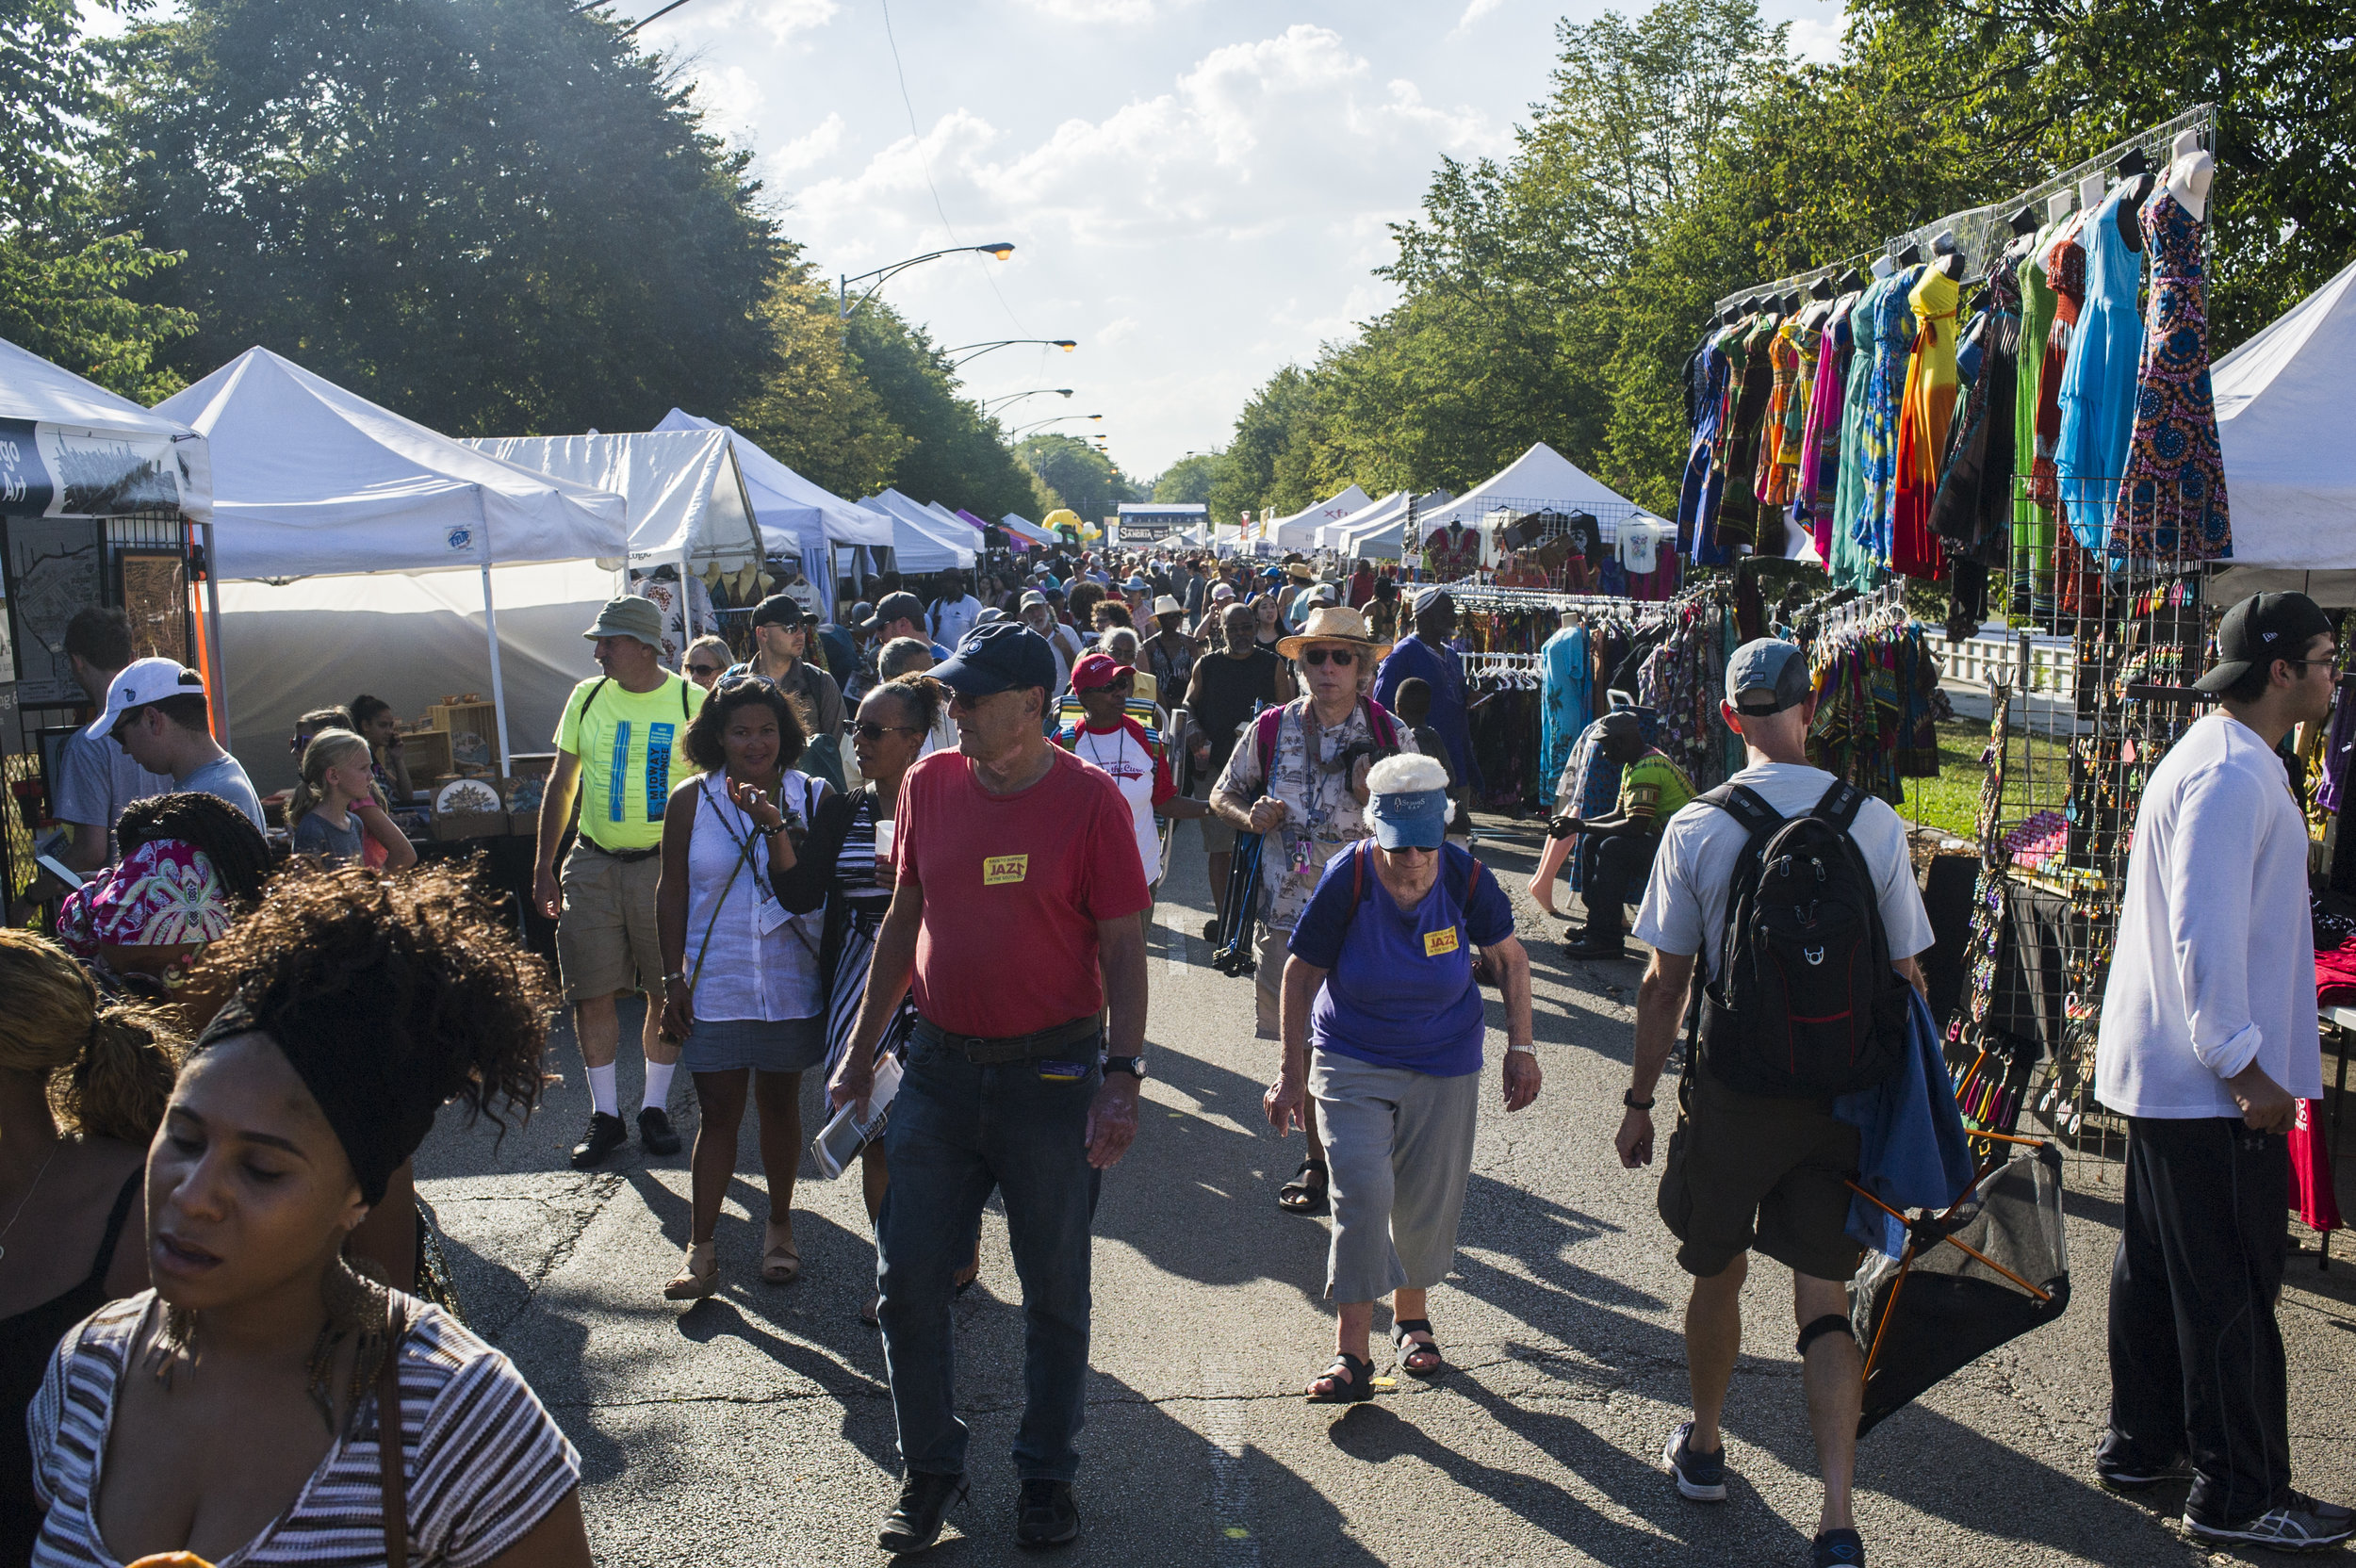 The Midway Plaisance transforms into a marketplace during the Hyde Park Jazz Festival.    PHOTO BY MARC MONAGHAN PROVIDED BY HYDE PARK JAZZ FESTIVAL